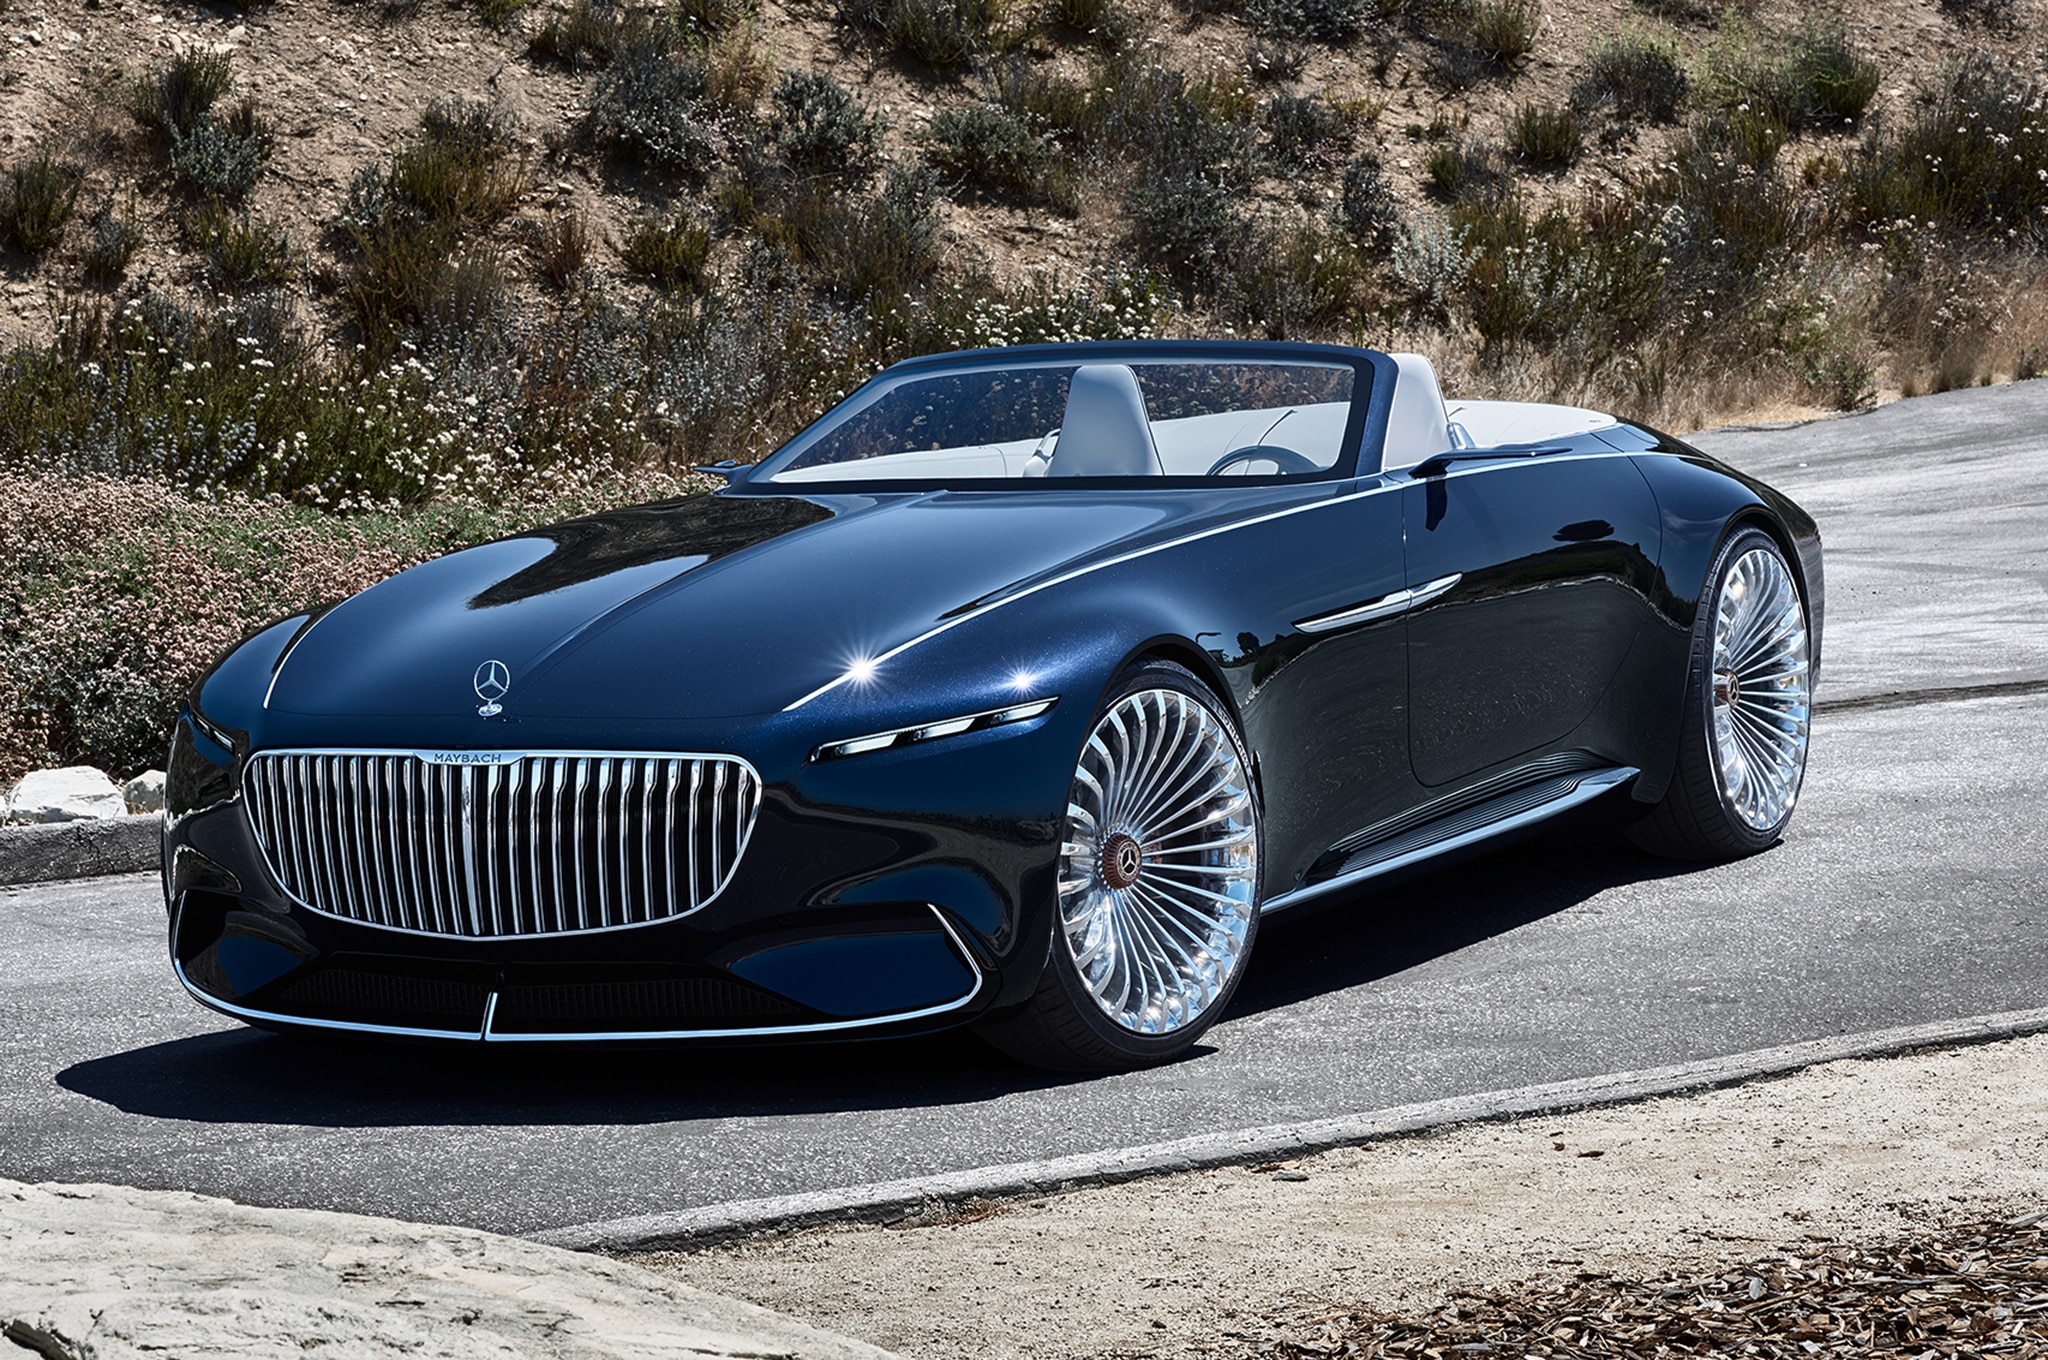 Vision mercedes maybach 6 cabriolet wows pebble beach for Mercedes benz maybach 6 price